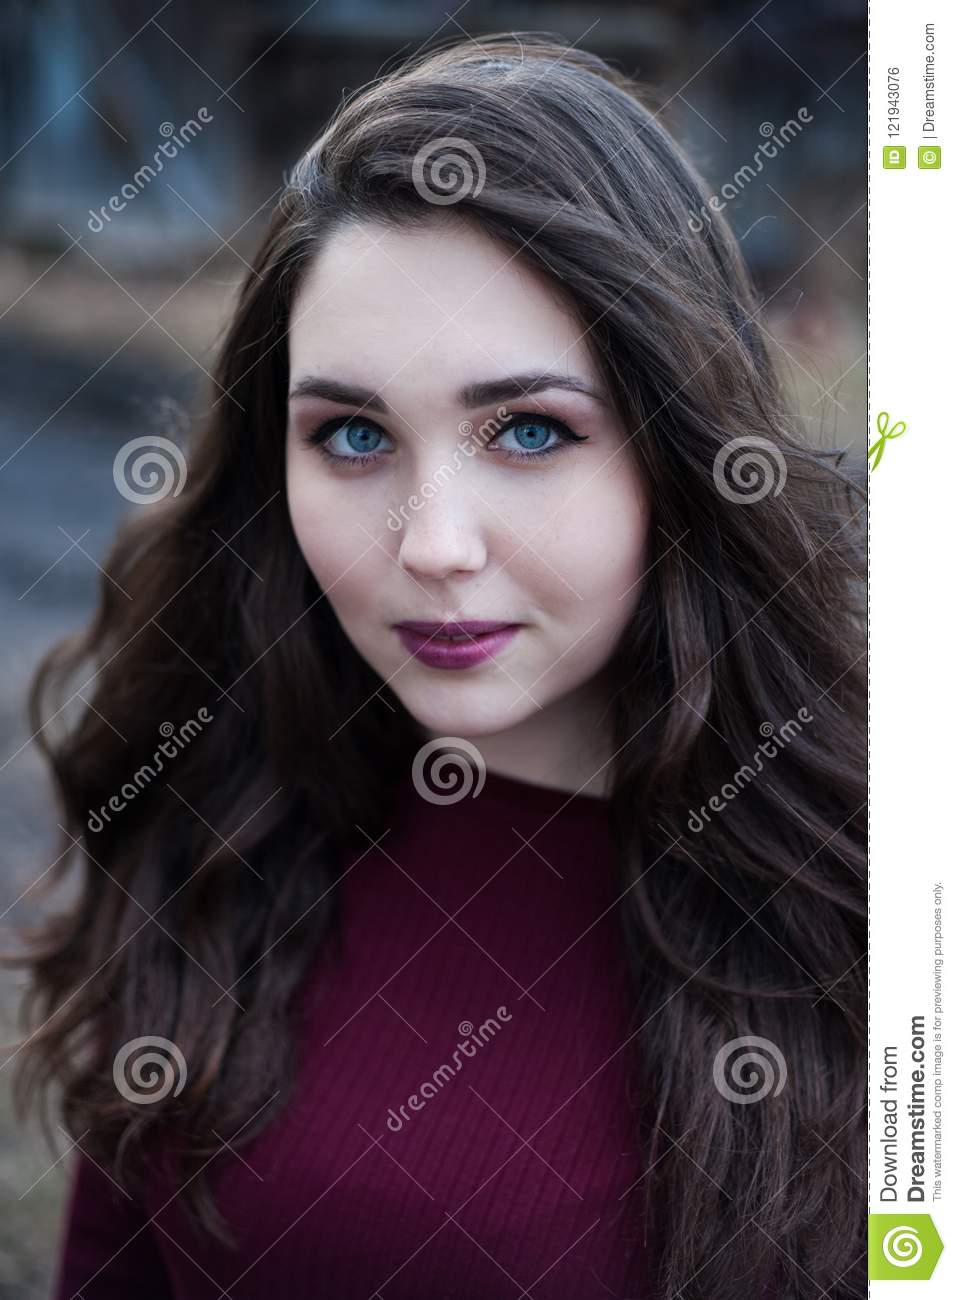 girl with black hair blue eyes portrait of a blue eyed girl with dark hair in cherry